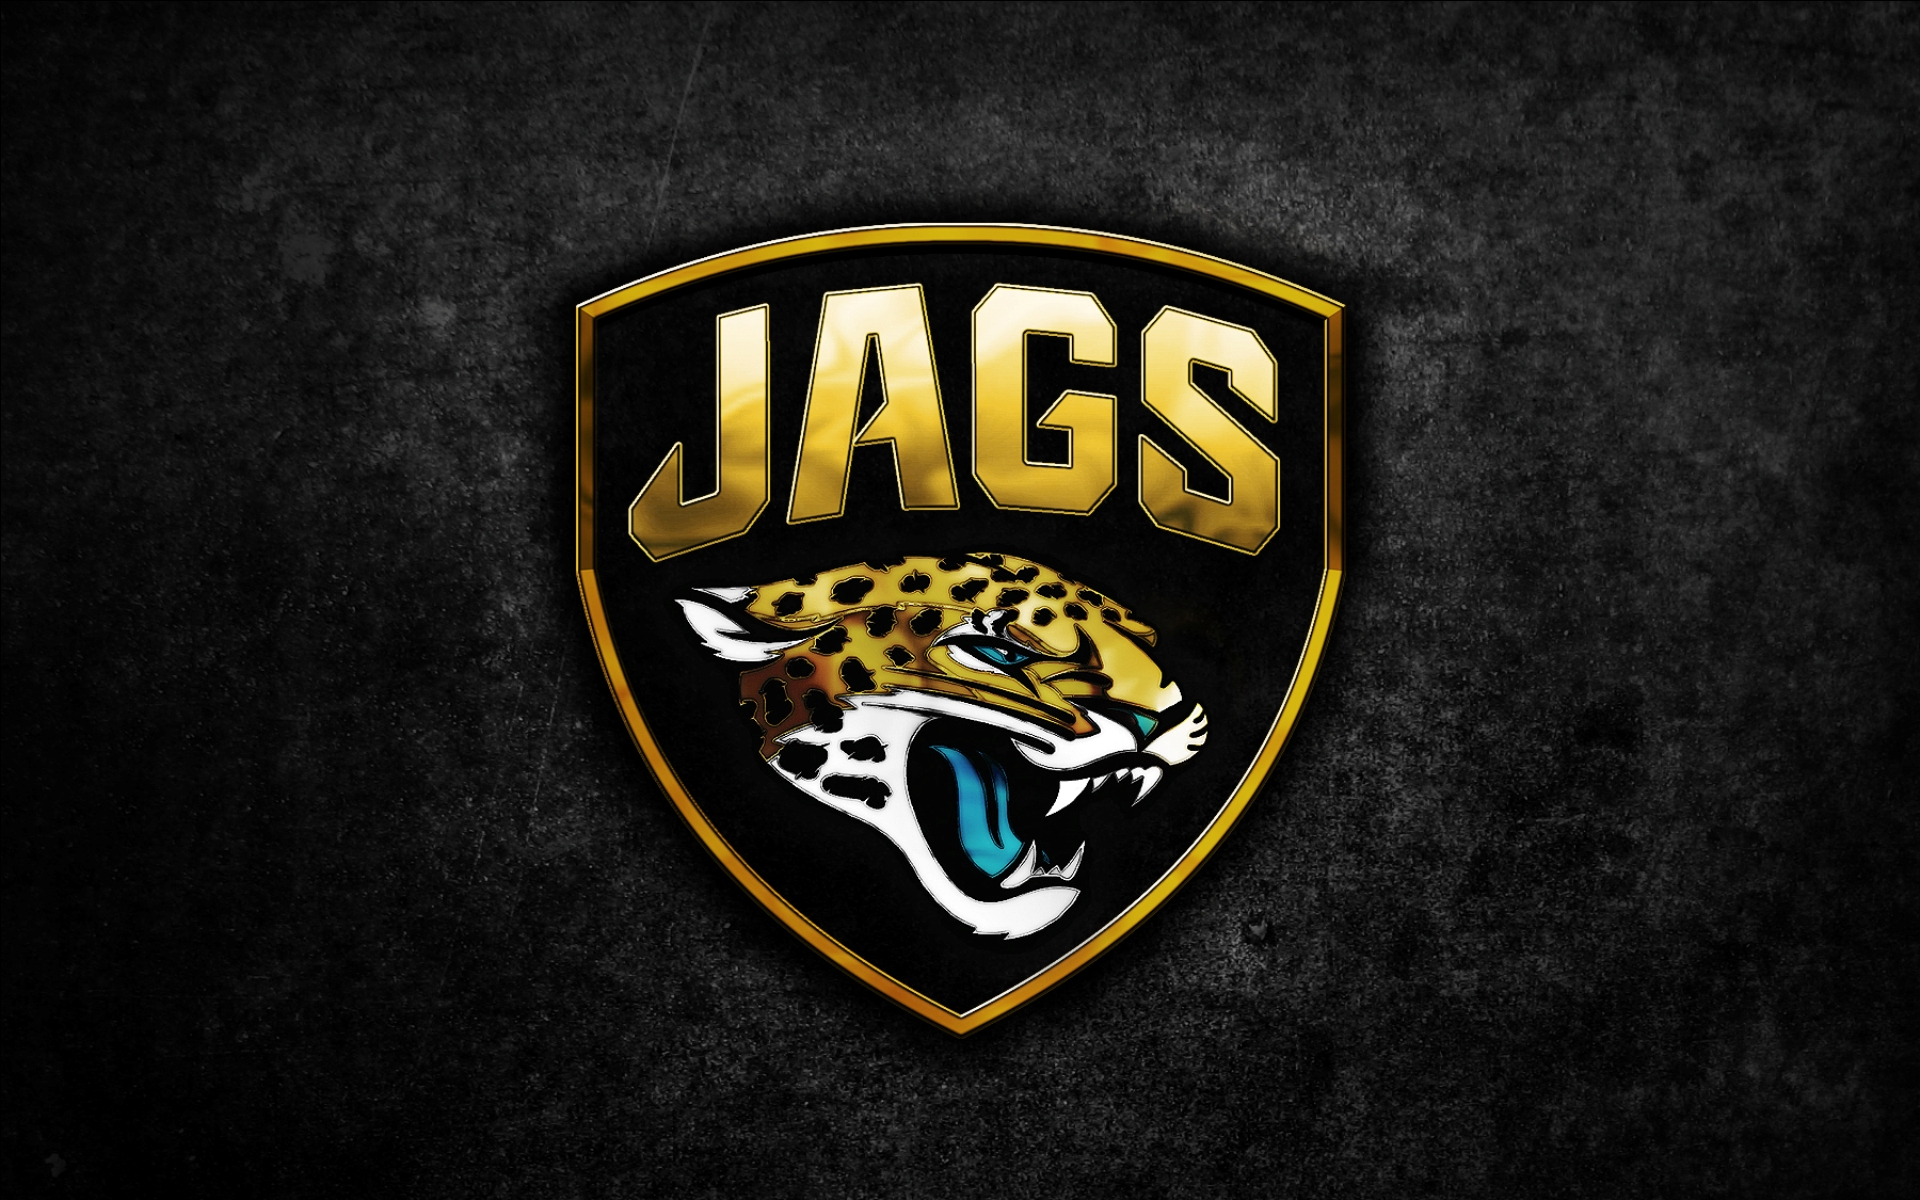 JACKSONVILLE JAGUARS nfl football r wallpaper 1920x1200 157798 1920x1200